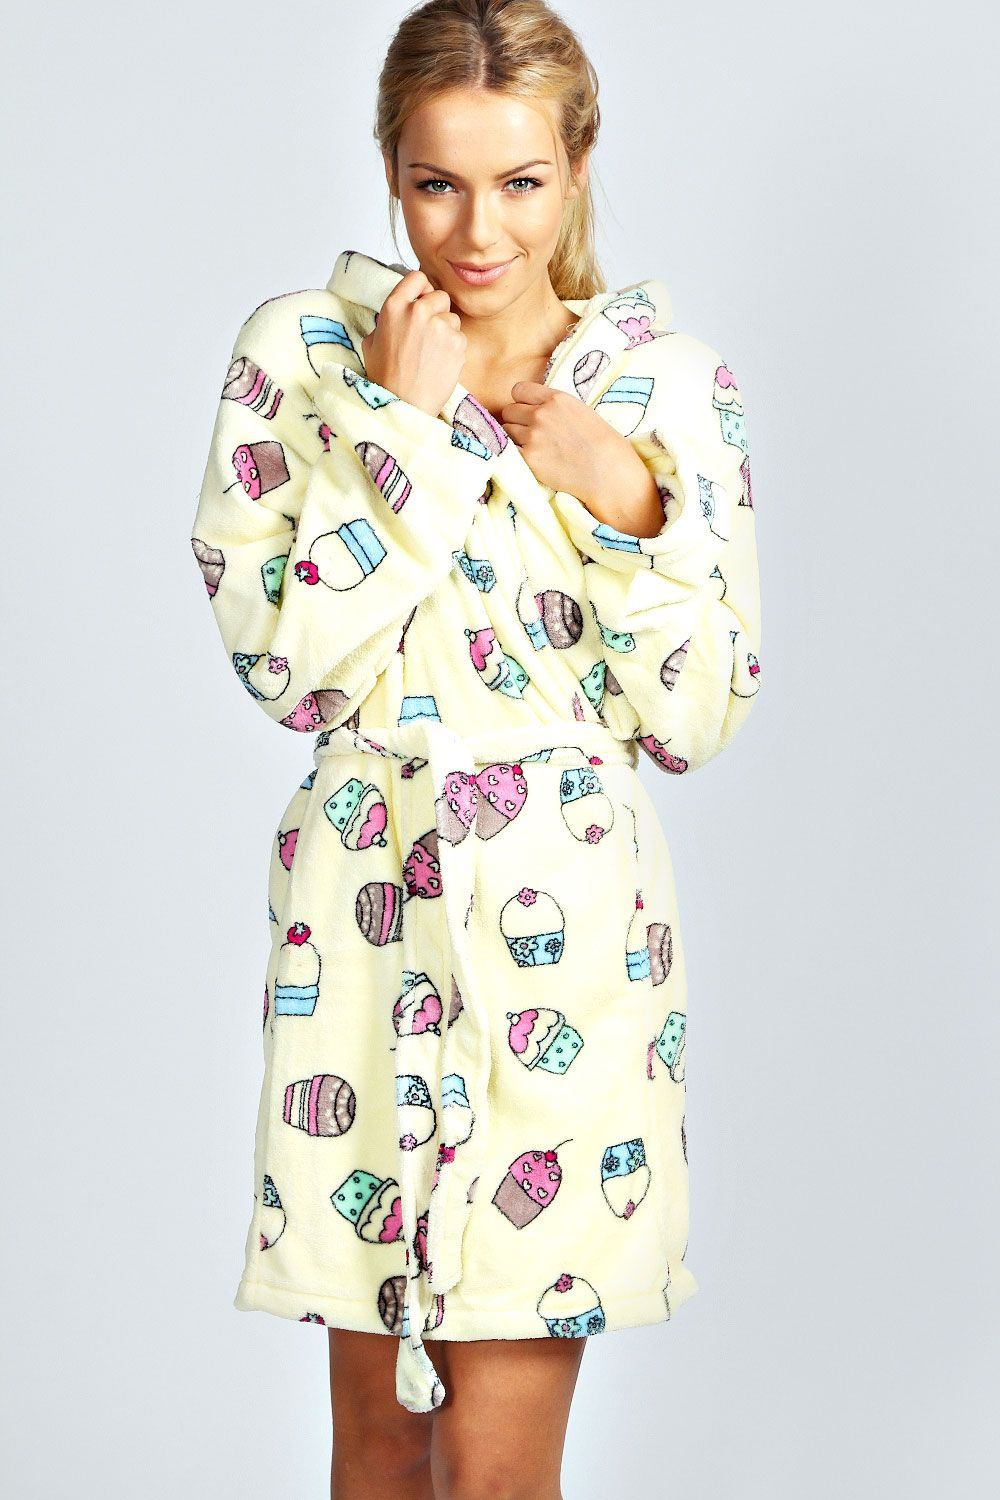 Cupcake Print Dressing Gown >> http://www.boohoo.com/restofworld/gifts/gifts-for-her/icat/new-in/tia-cupcake-print-dressing-gown/invt/azz36494